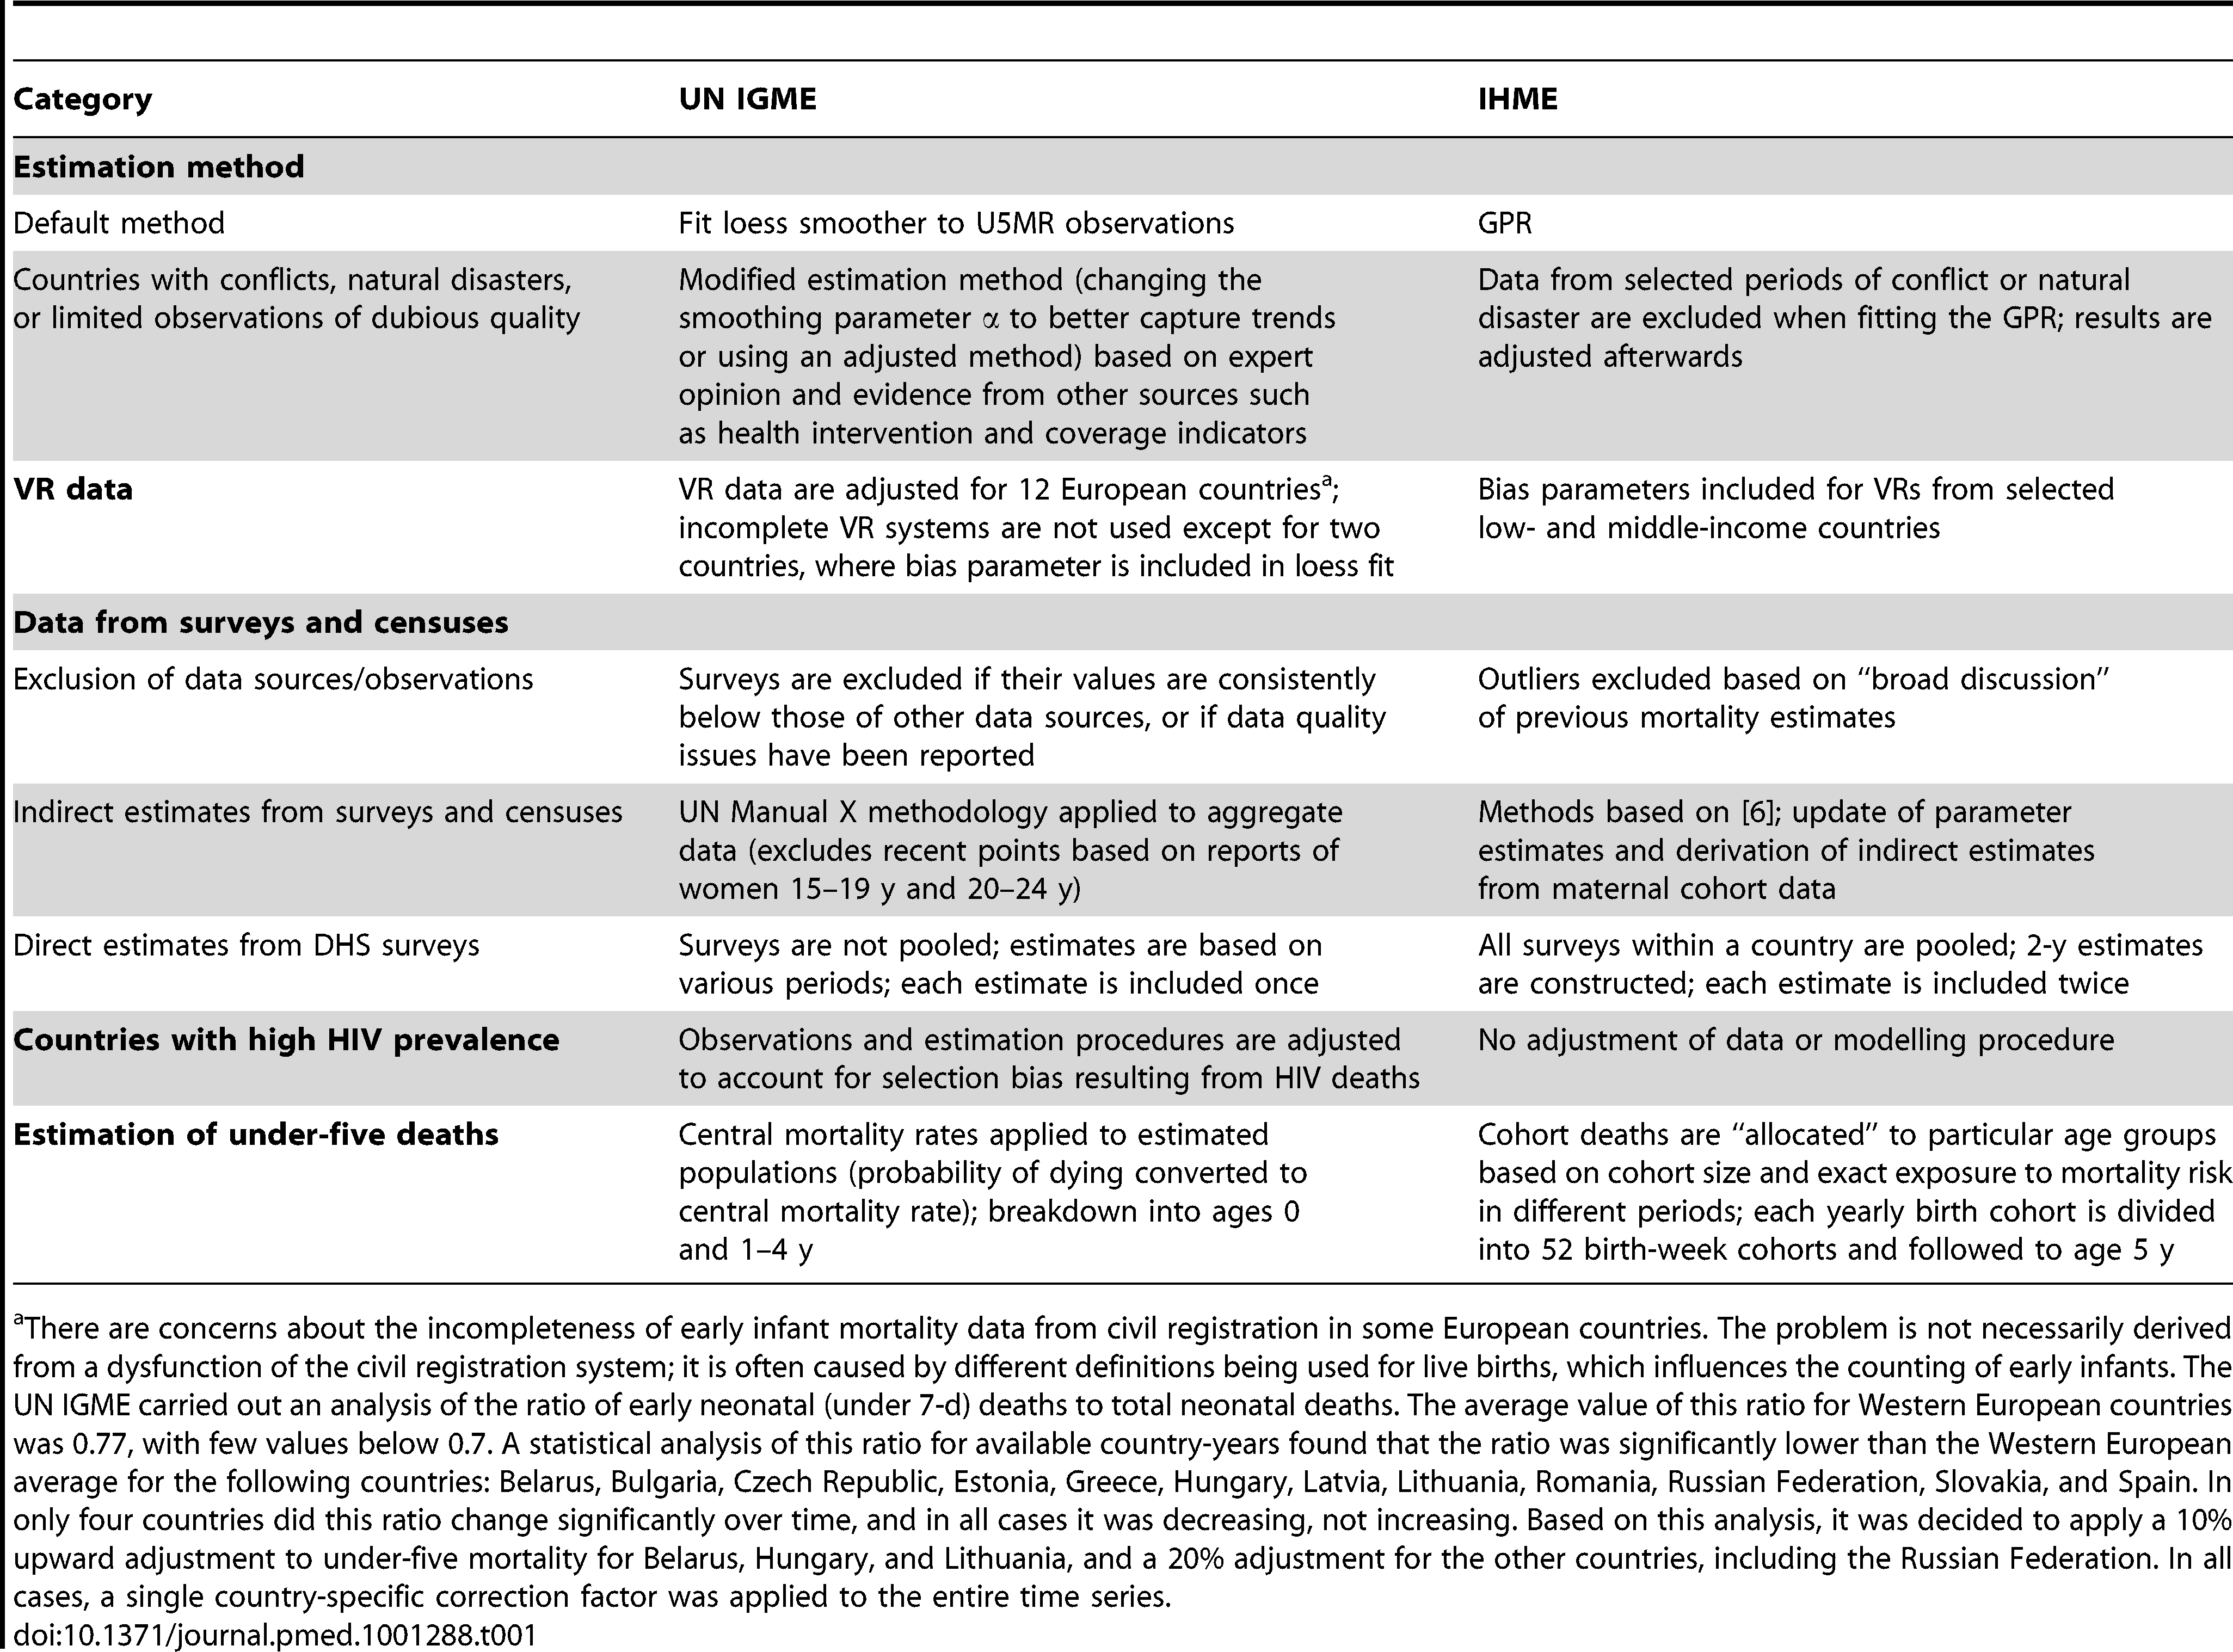 Overview of differences in modelling approach and data used by the UN IGME and the IHME for estimating the U5MR and the number of under-five deaths.